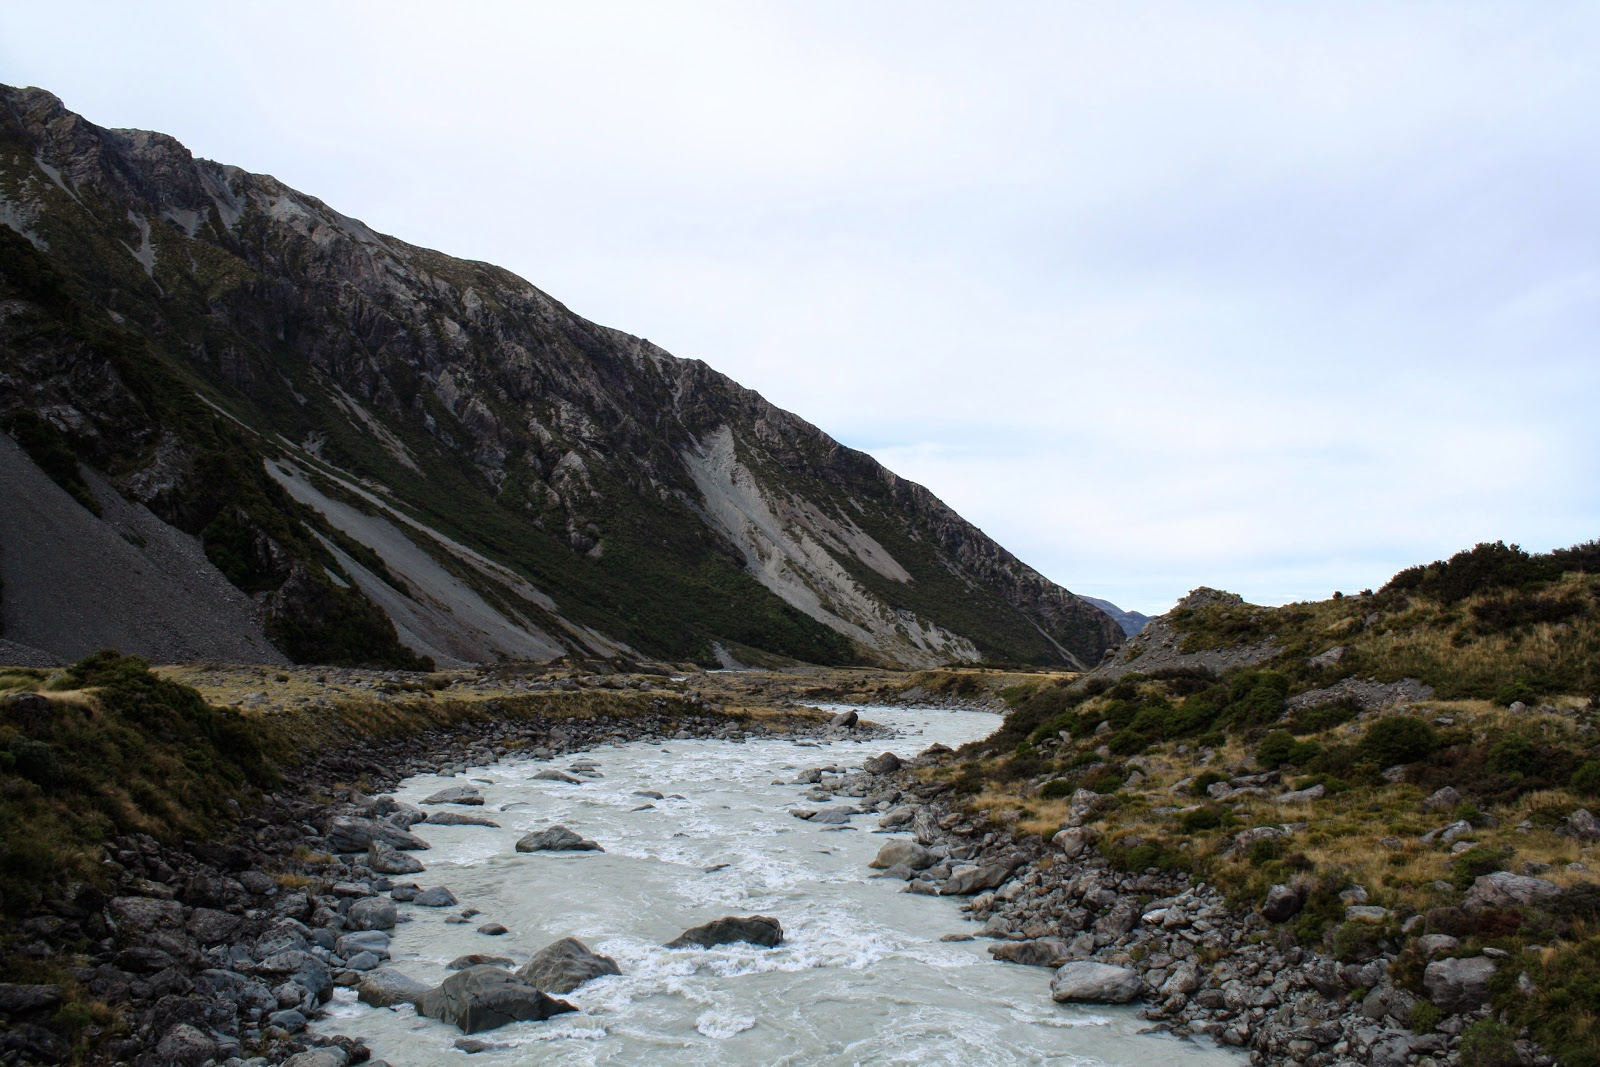 There's a river, and some stones. No glacier in this pic, sorry.